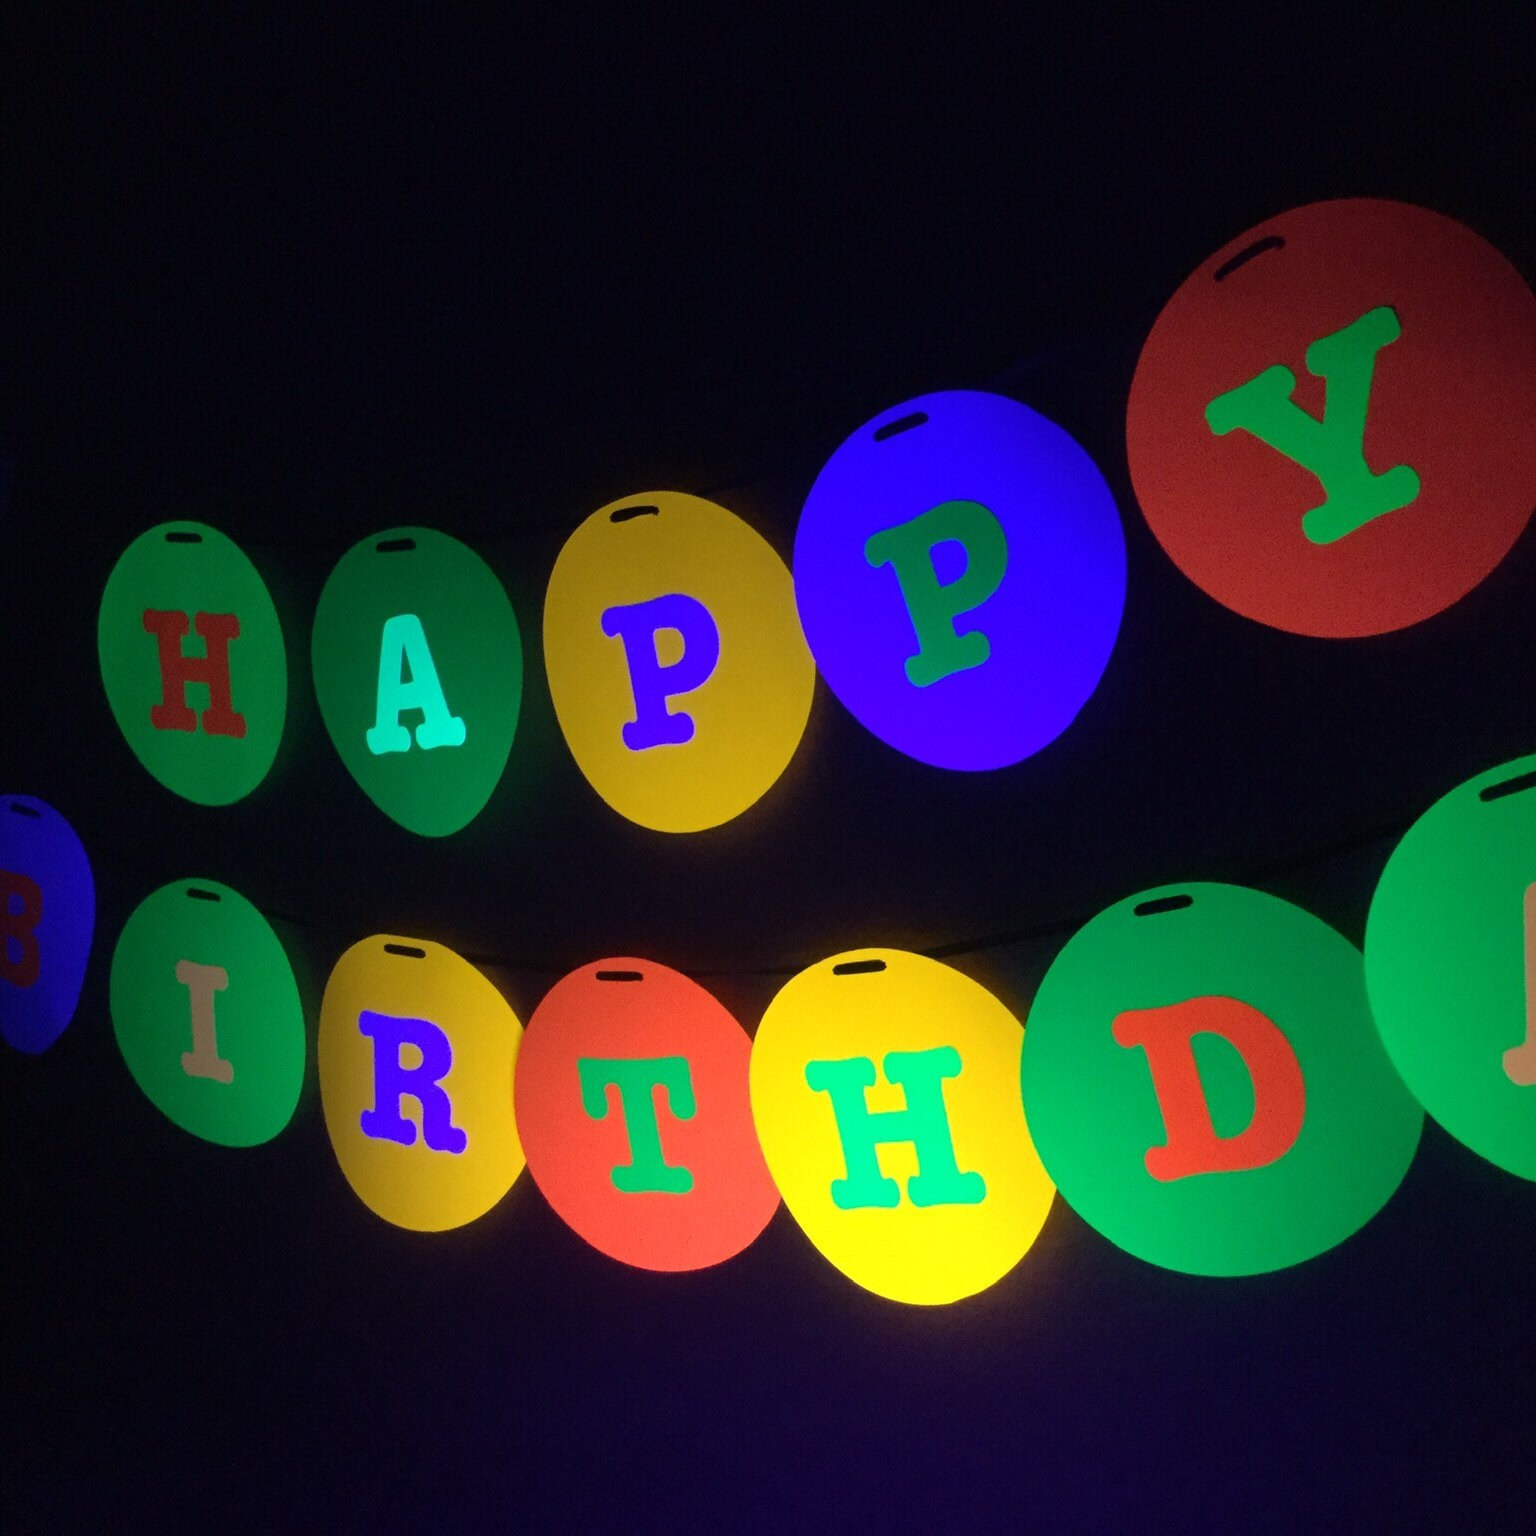 large 8 circle with letters to spell HAPPY BIRTHDAY in neon colors for glow black light party